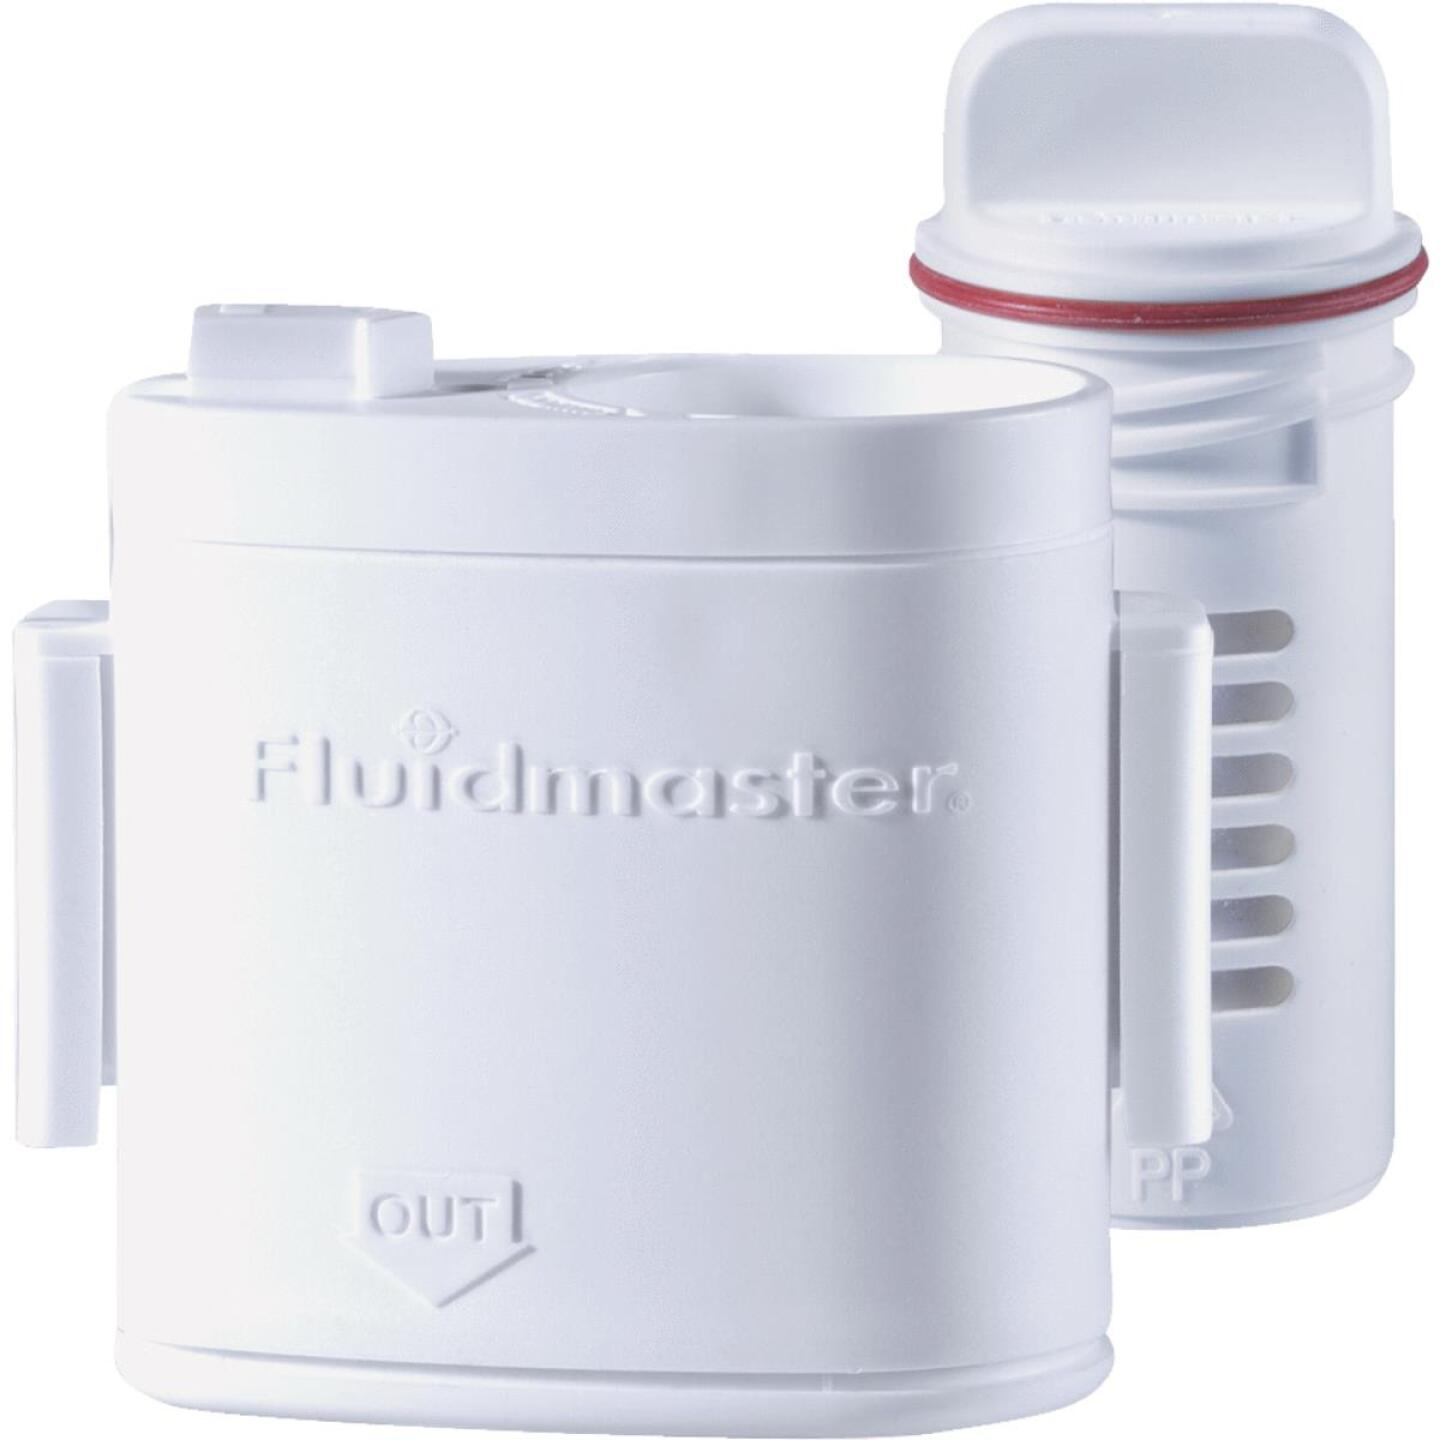 Fluidmaster Flush 'n Sparkle Automatic Toilet Bowl Cleaning System with Bleach Image 1